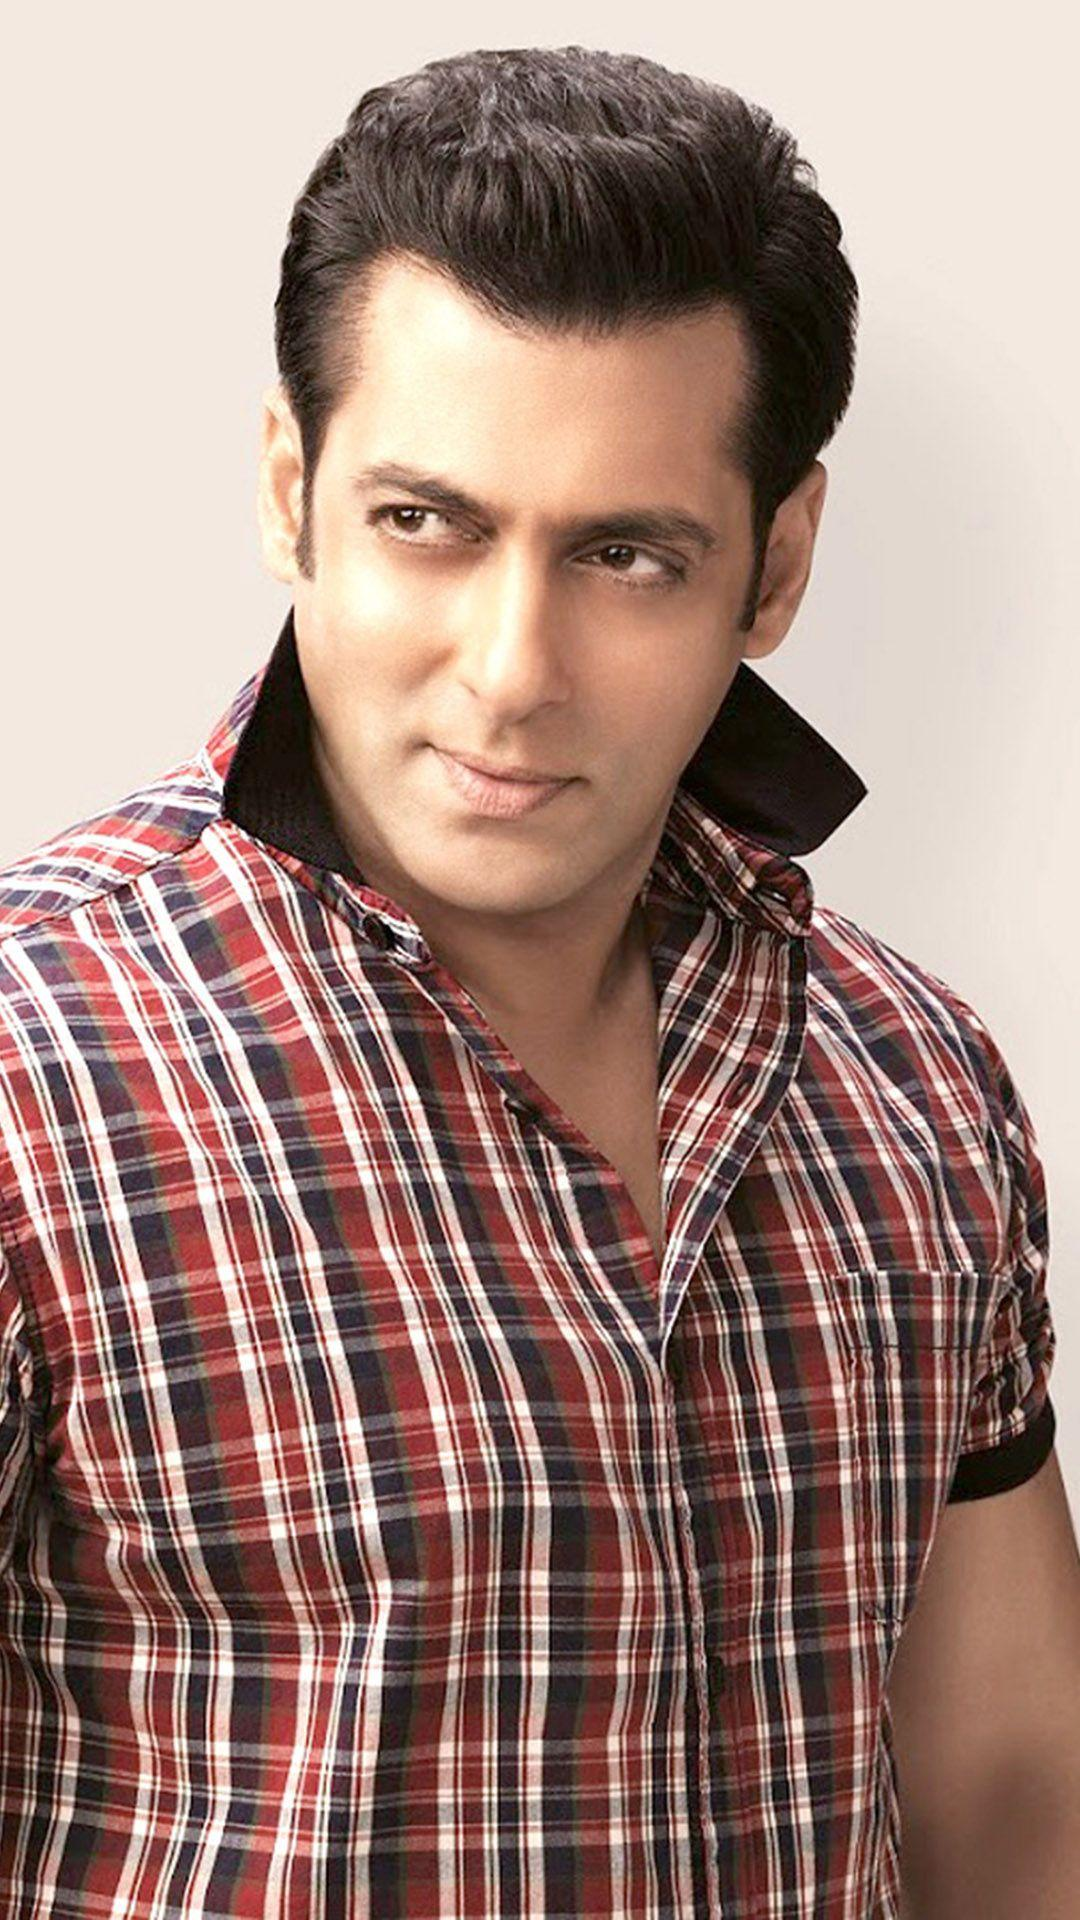 HD Backgrounds Salman Khan Checks Shirt Photoshoot Wallpapers